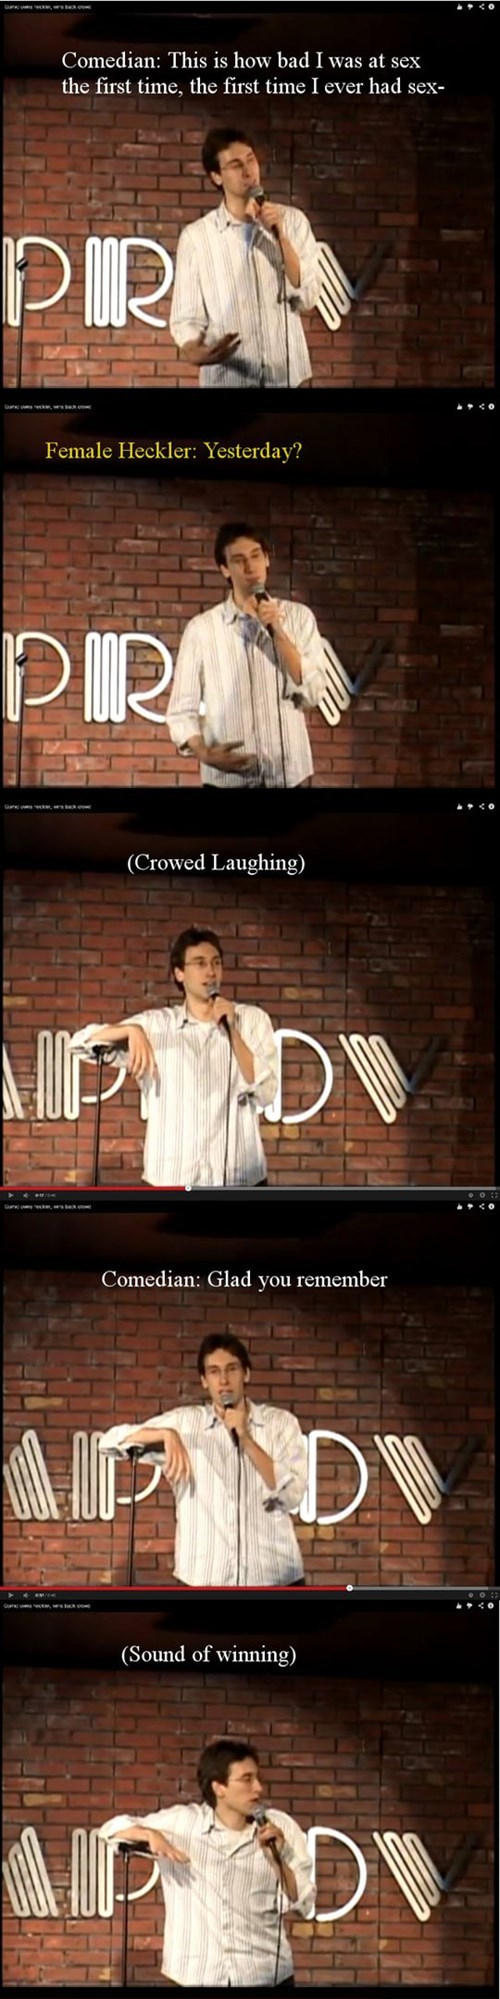 sex Heckler comedians virgins burn - 7950544384